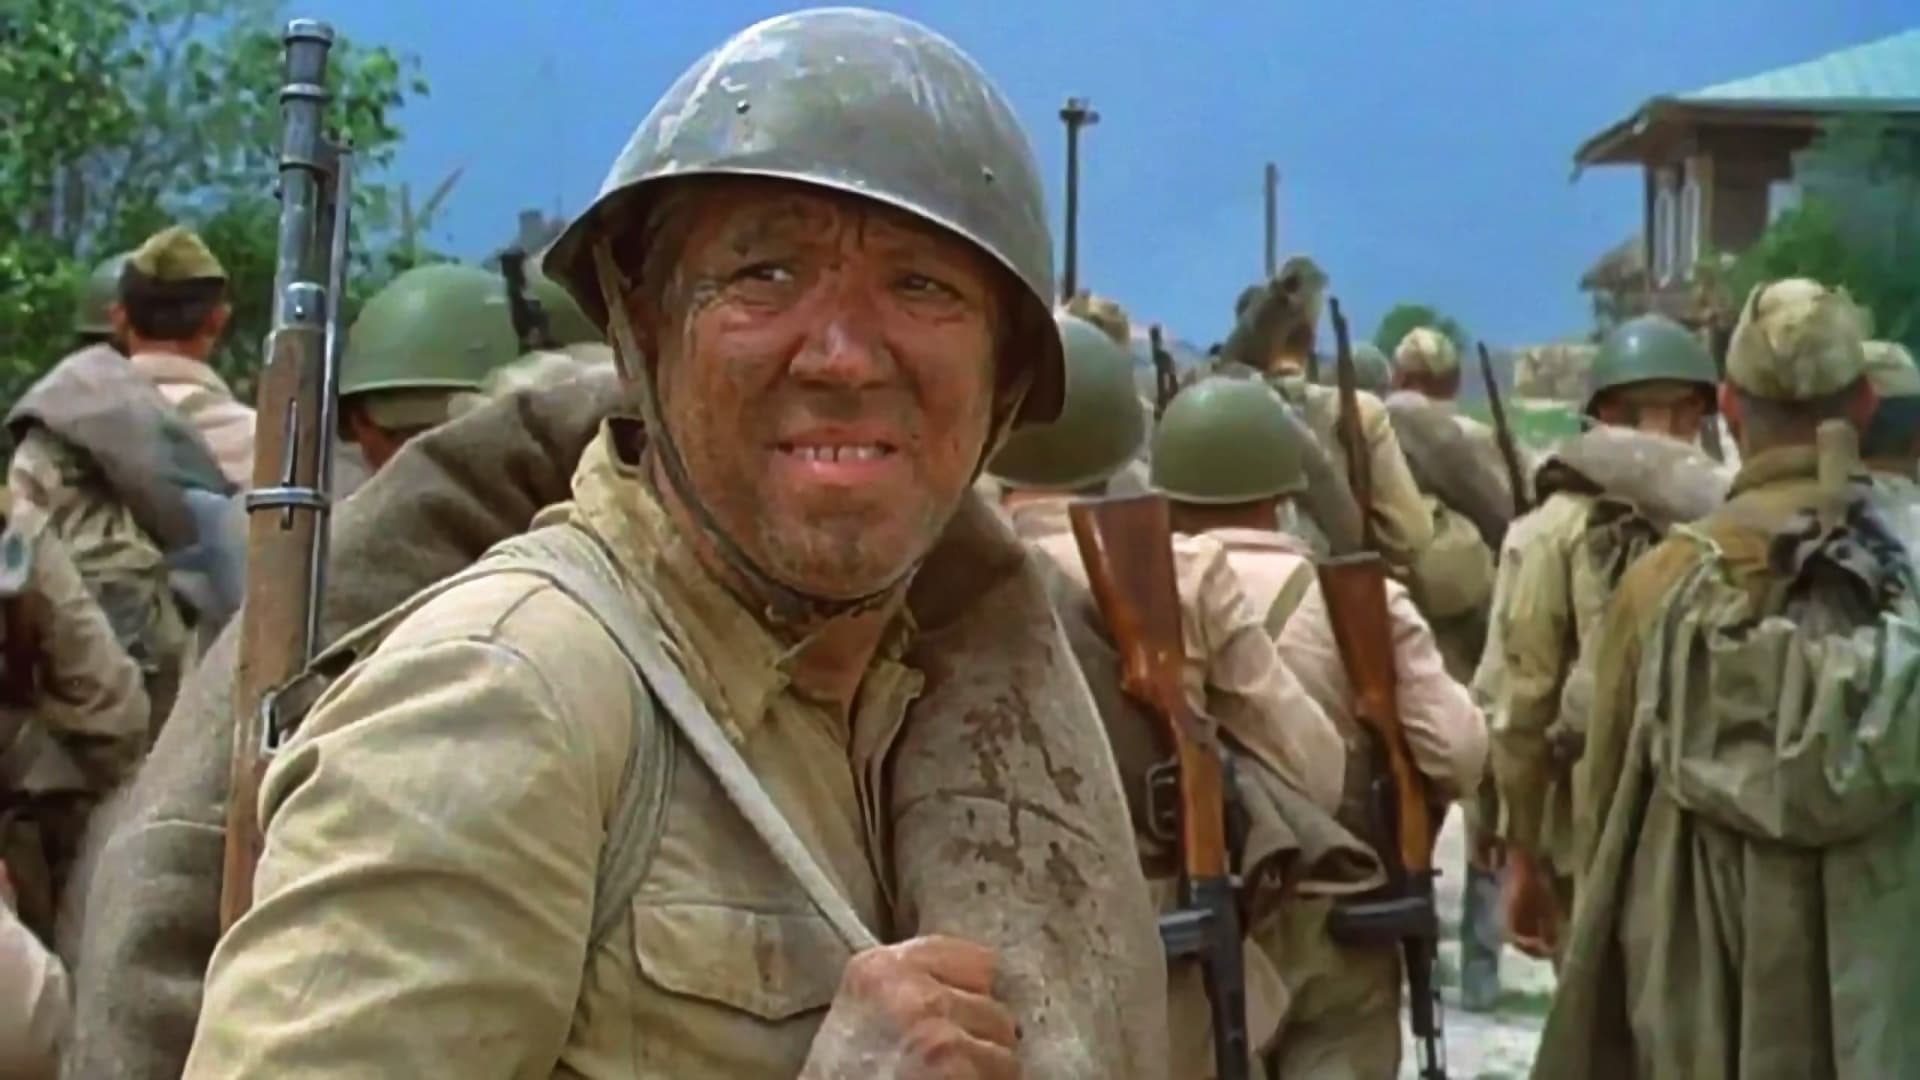 Watch They Fought for Their Motherland (1975) Full Movie Online Free | Stream Free Movies & TV Shows